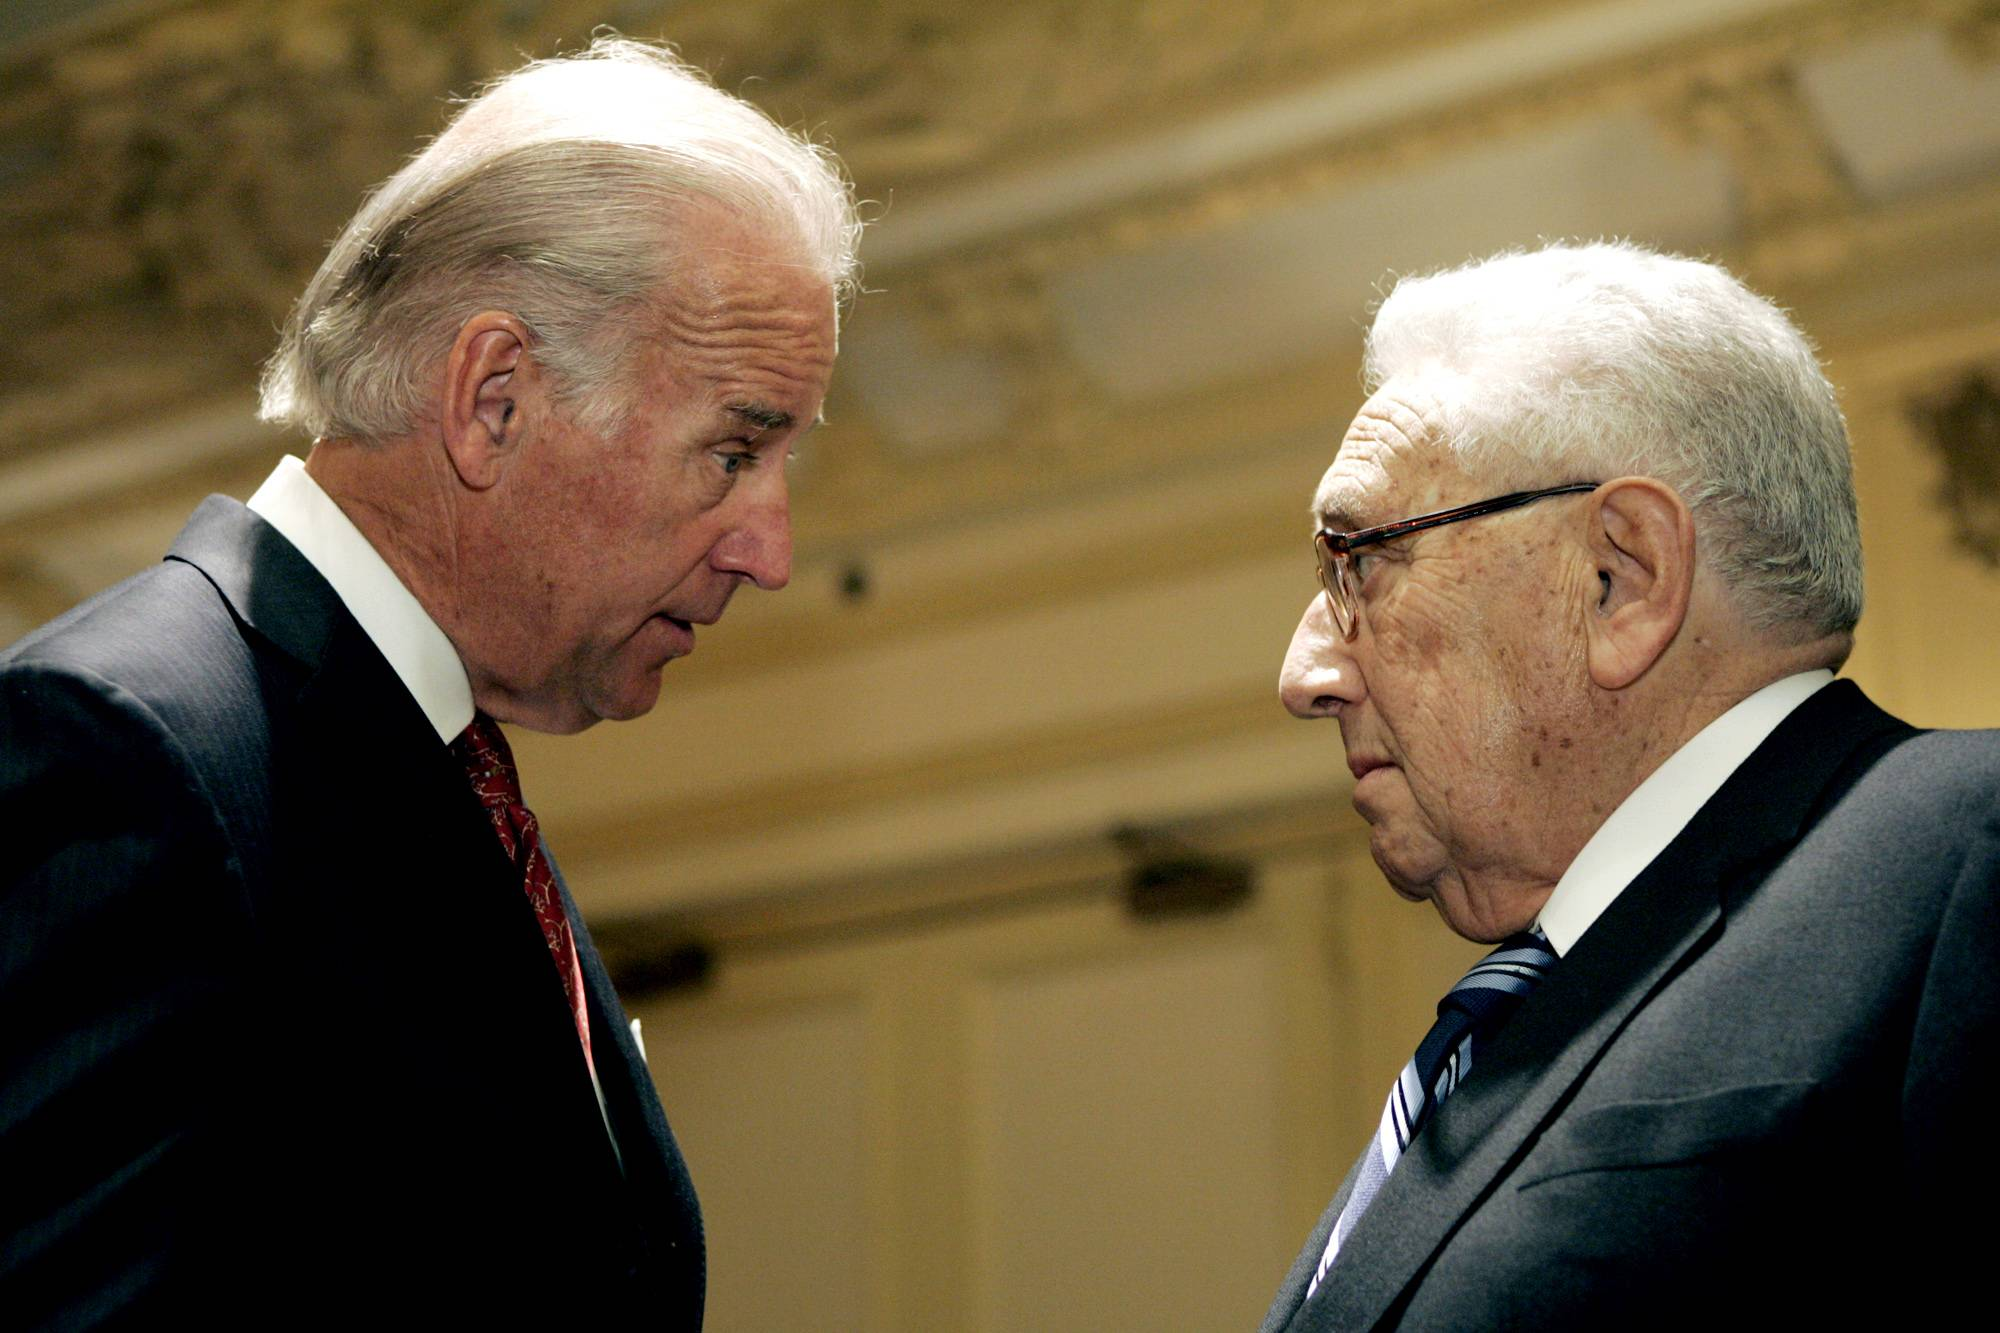 Then-Sen. Joseph Biden, D-Del., left, speaks with former Secretary of State Henry Kissinger, after he gave a speech proposing that Iraq be divided into three separate regions during the World Affairs Council of Philadelphia conference in Philadelphia.